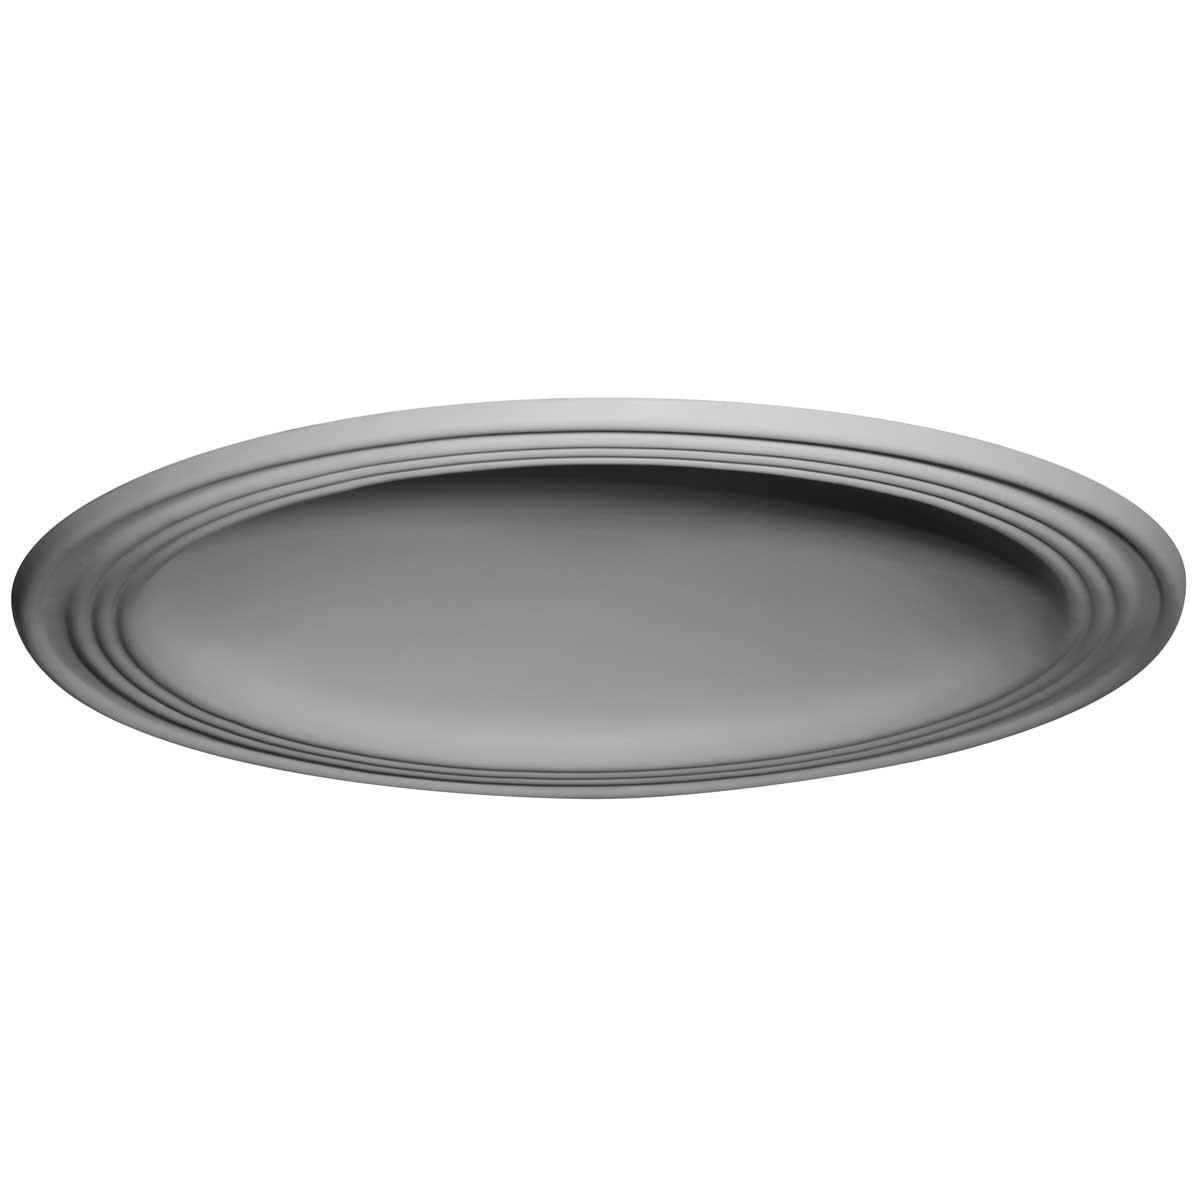 "EM-DOME28TR - 28""OD x 22 1/2""ID x 4 5/8""D, 2 3/4""W Trim, Traditional Ceiling Dome (24""Diameter x 4 1/2""D Rough Opening)"